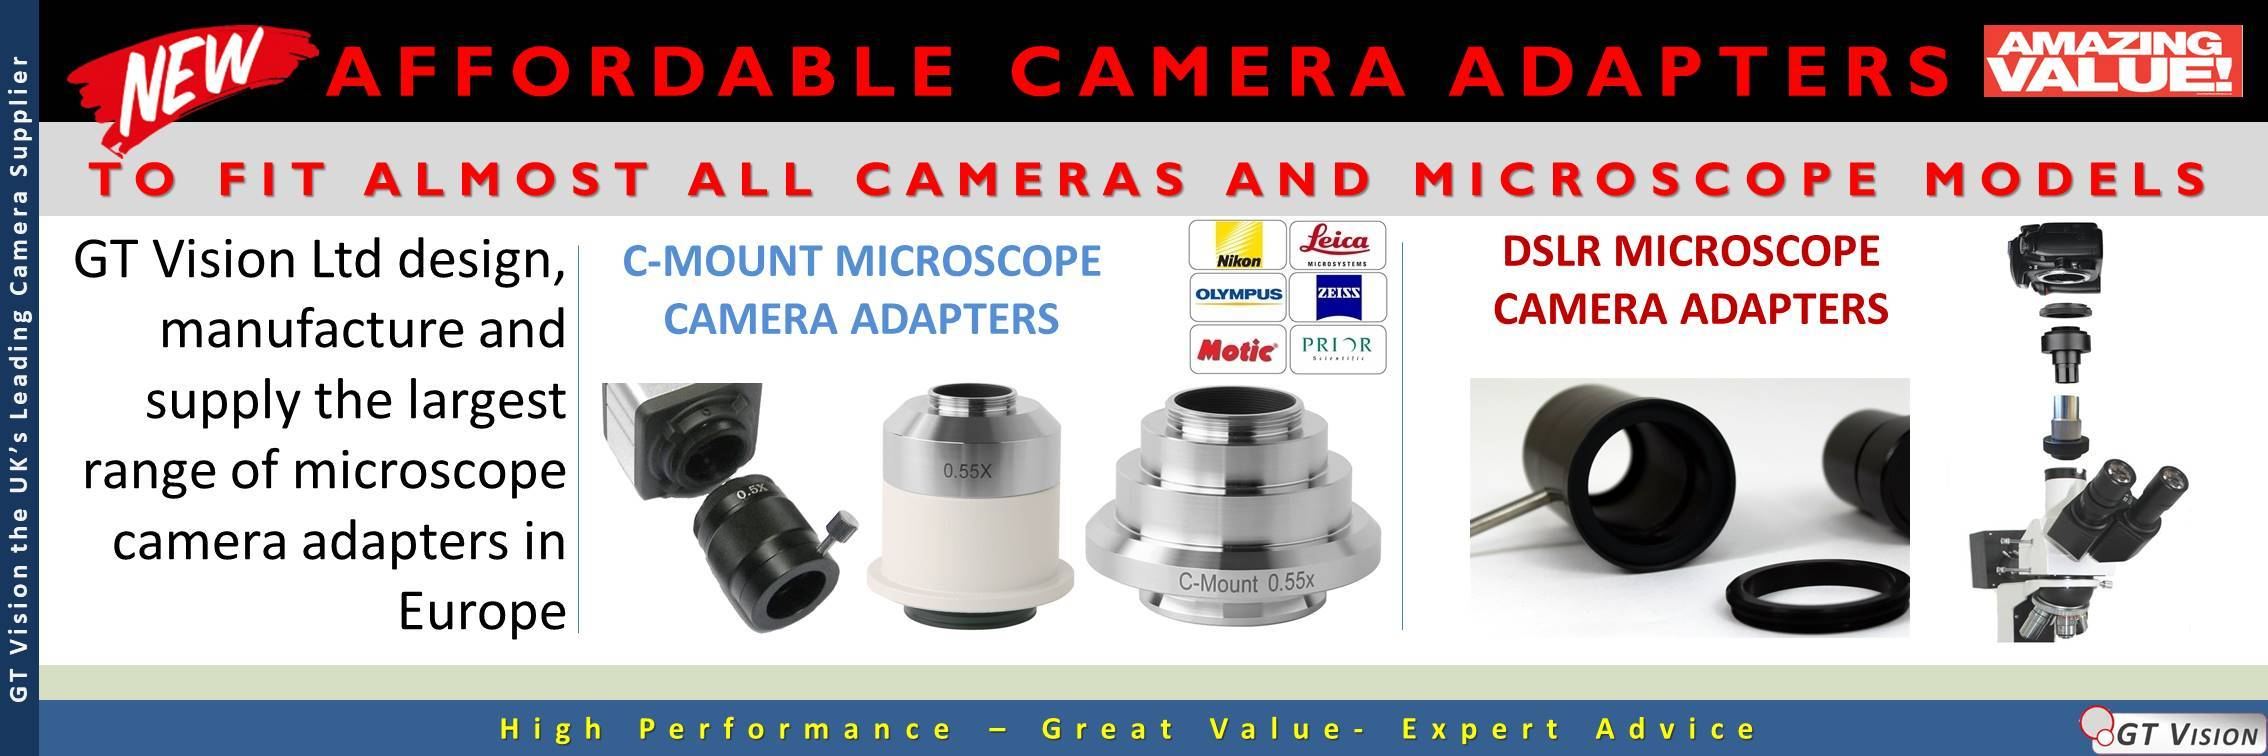 GT_Vision_Microscope_Camera_Adapters